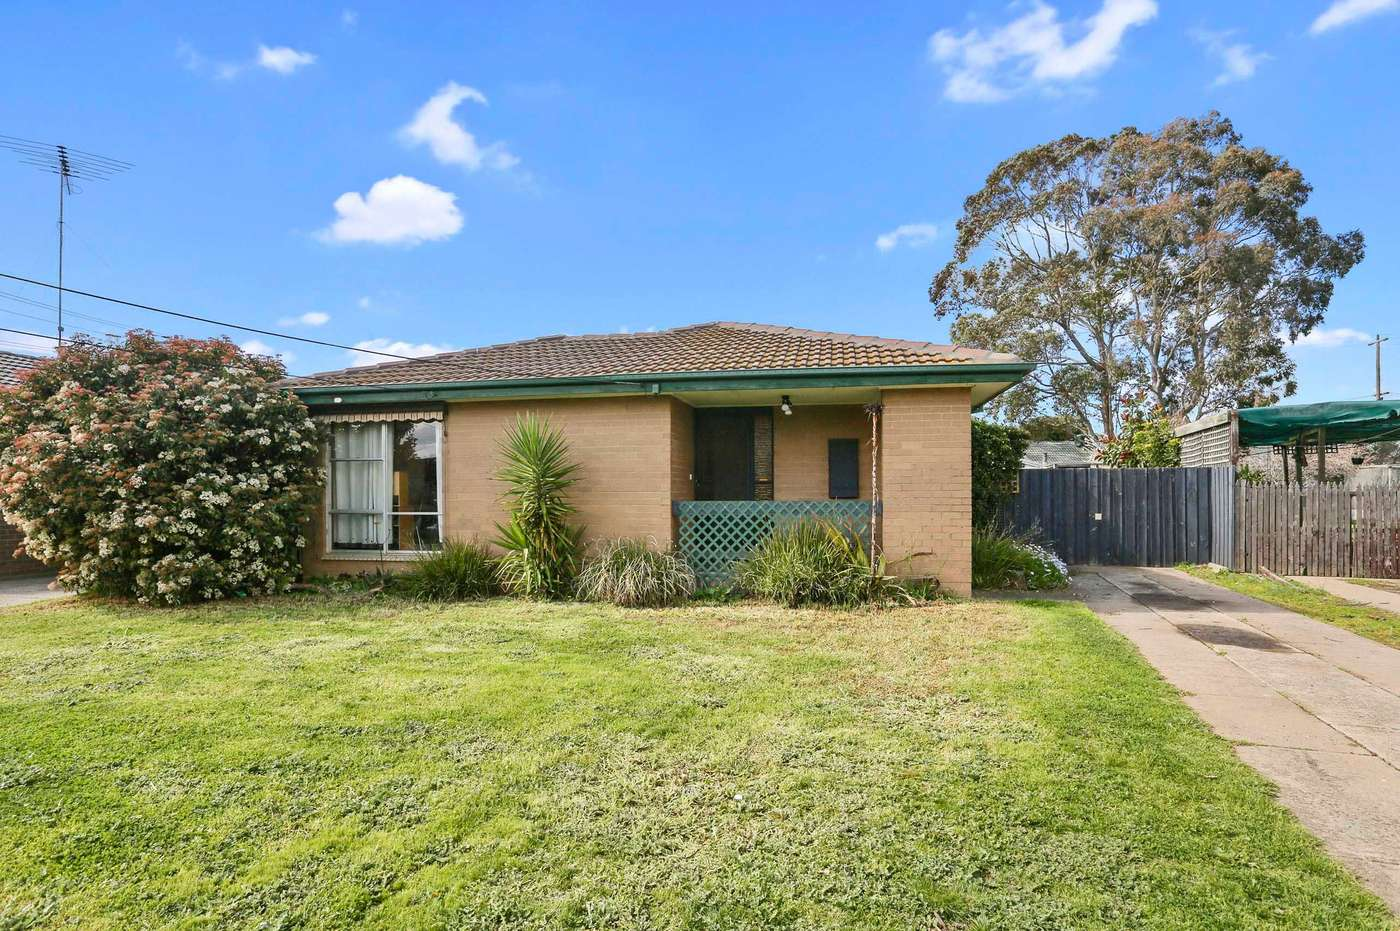 Main view of Homely house listing, 1 Hilson Court, Corio, VIC 3214